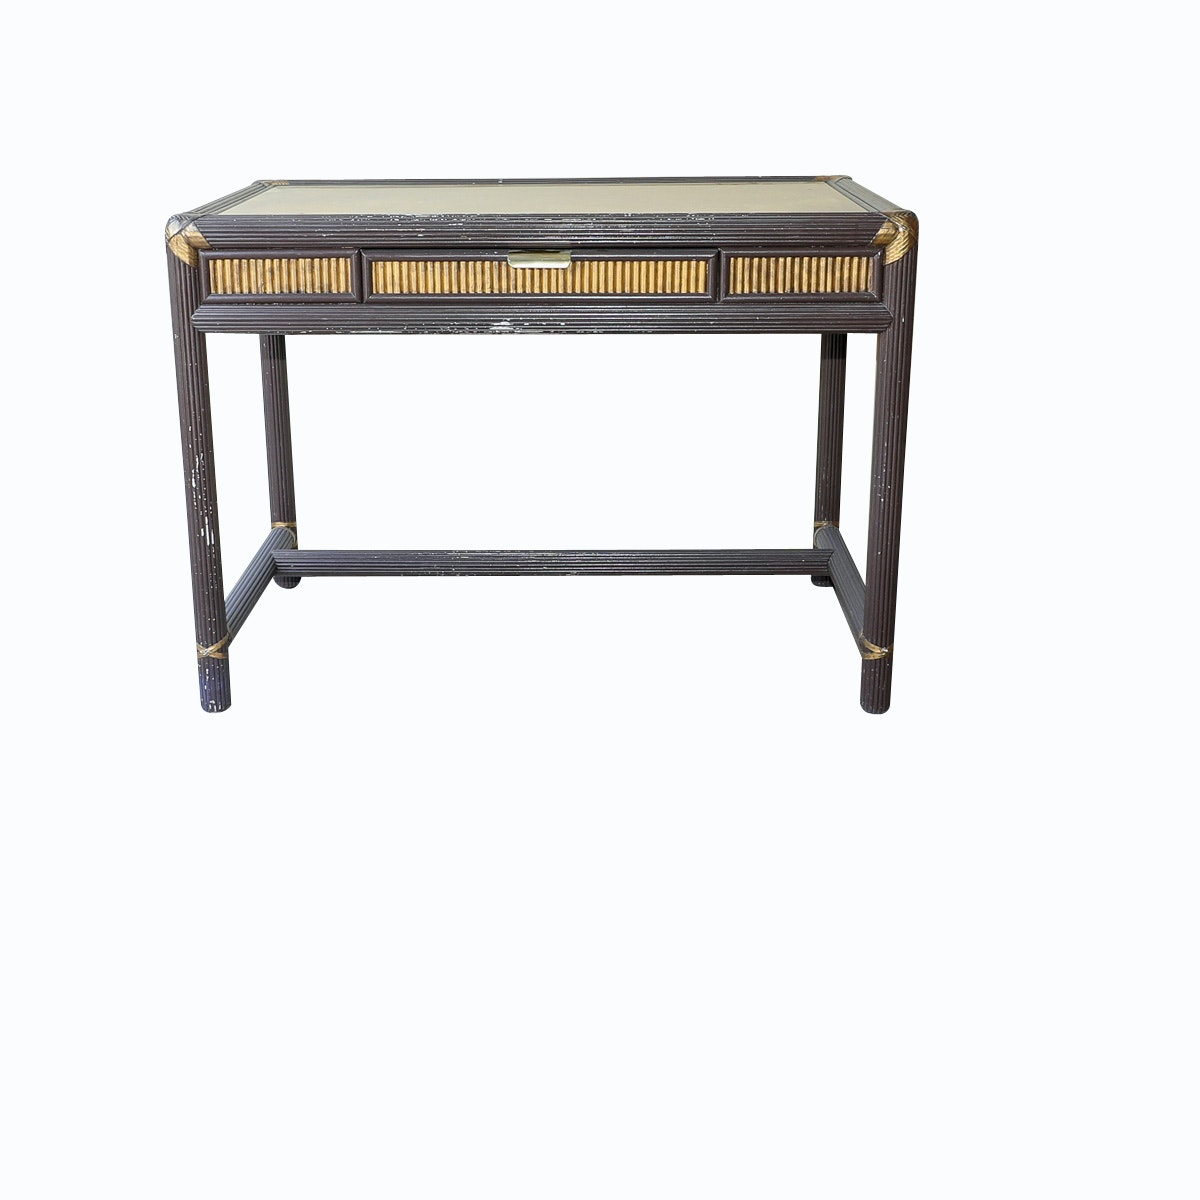 Vintage Asian Inspired Console Table ...